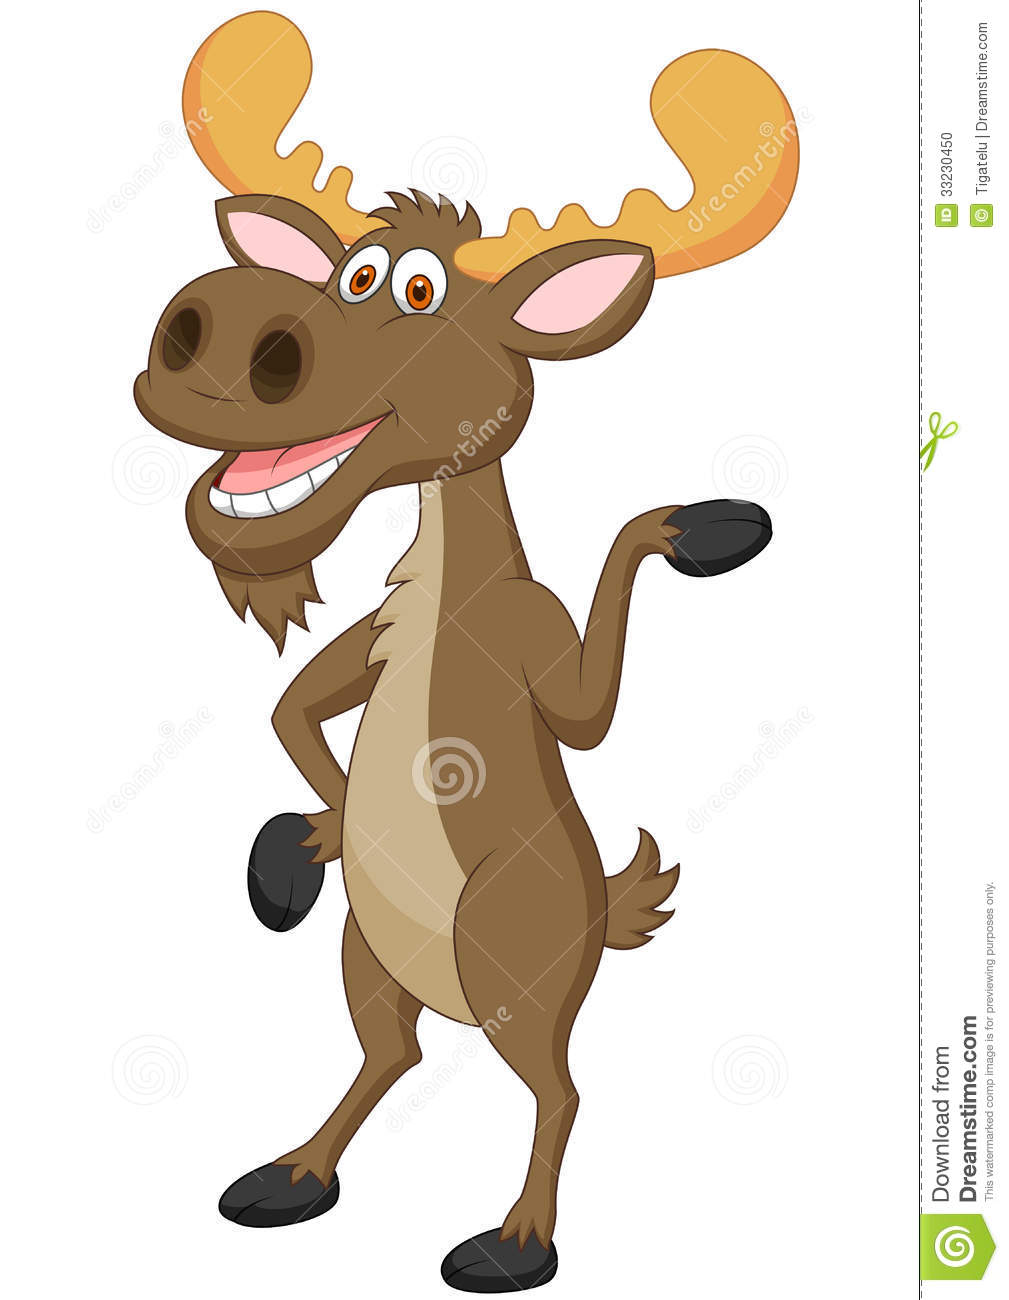 sexy cartoon moose jpg 1200x900